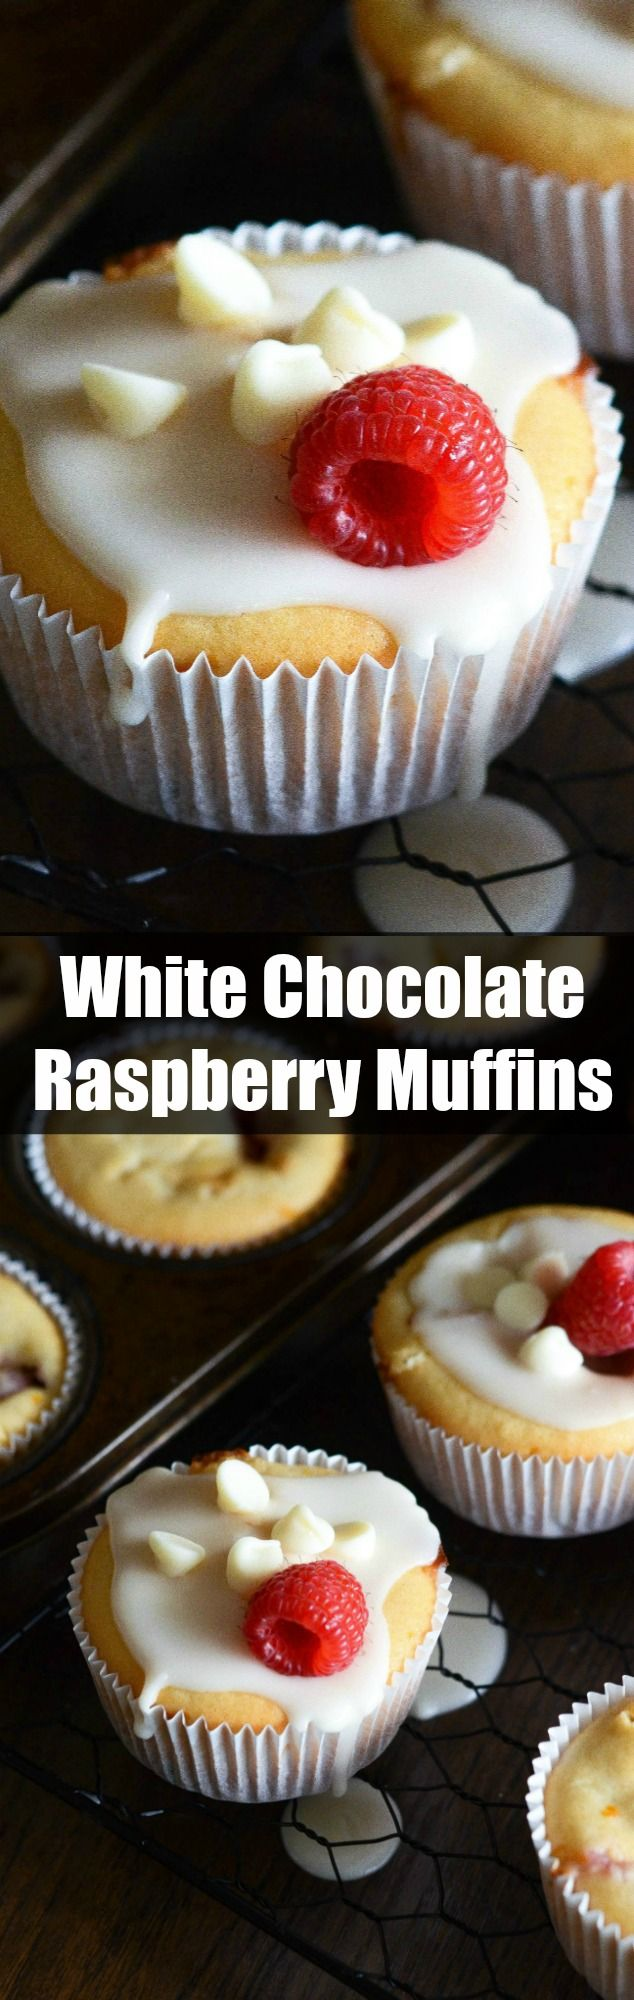 White Chocolate Raspberry Muffins - these easy one bowl muffins are filled with fresh raspberries, white chocolate chips and a hint of orange zest!